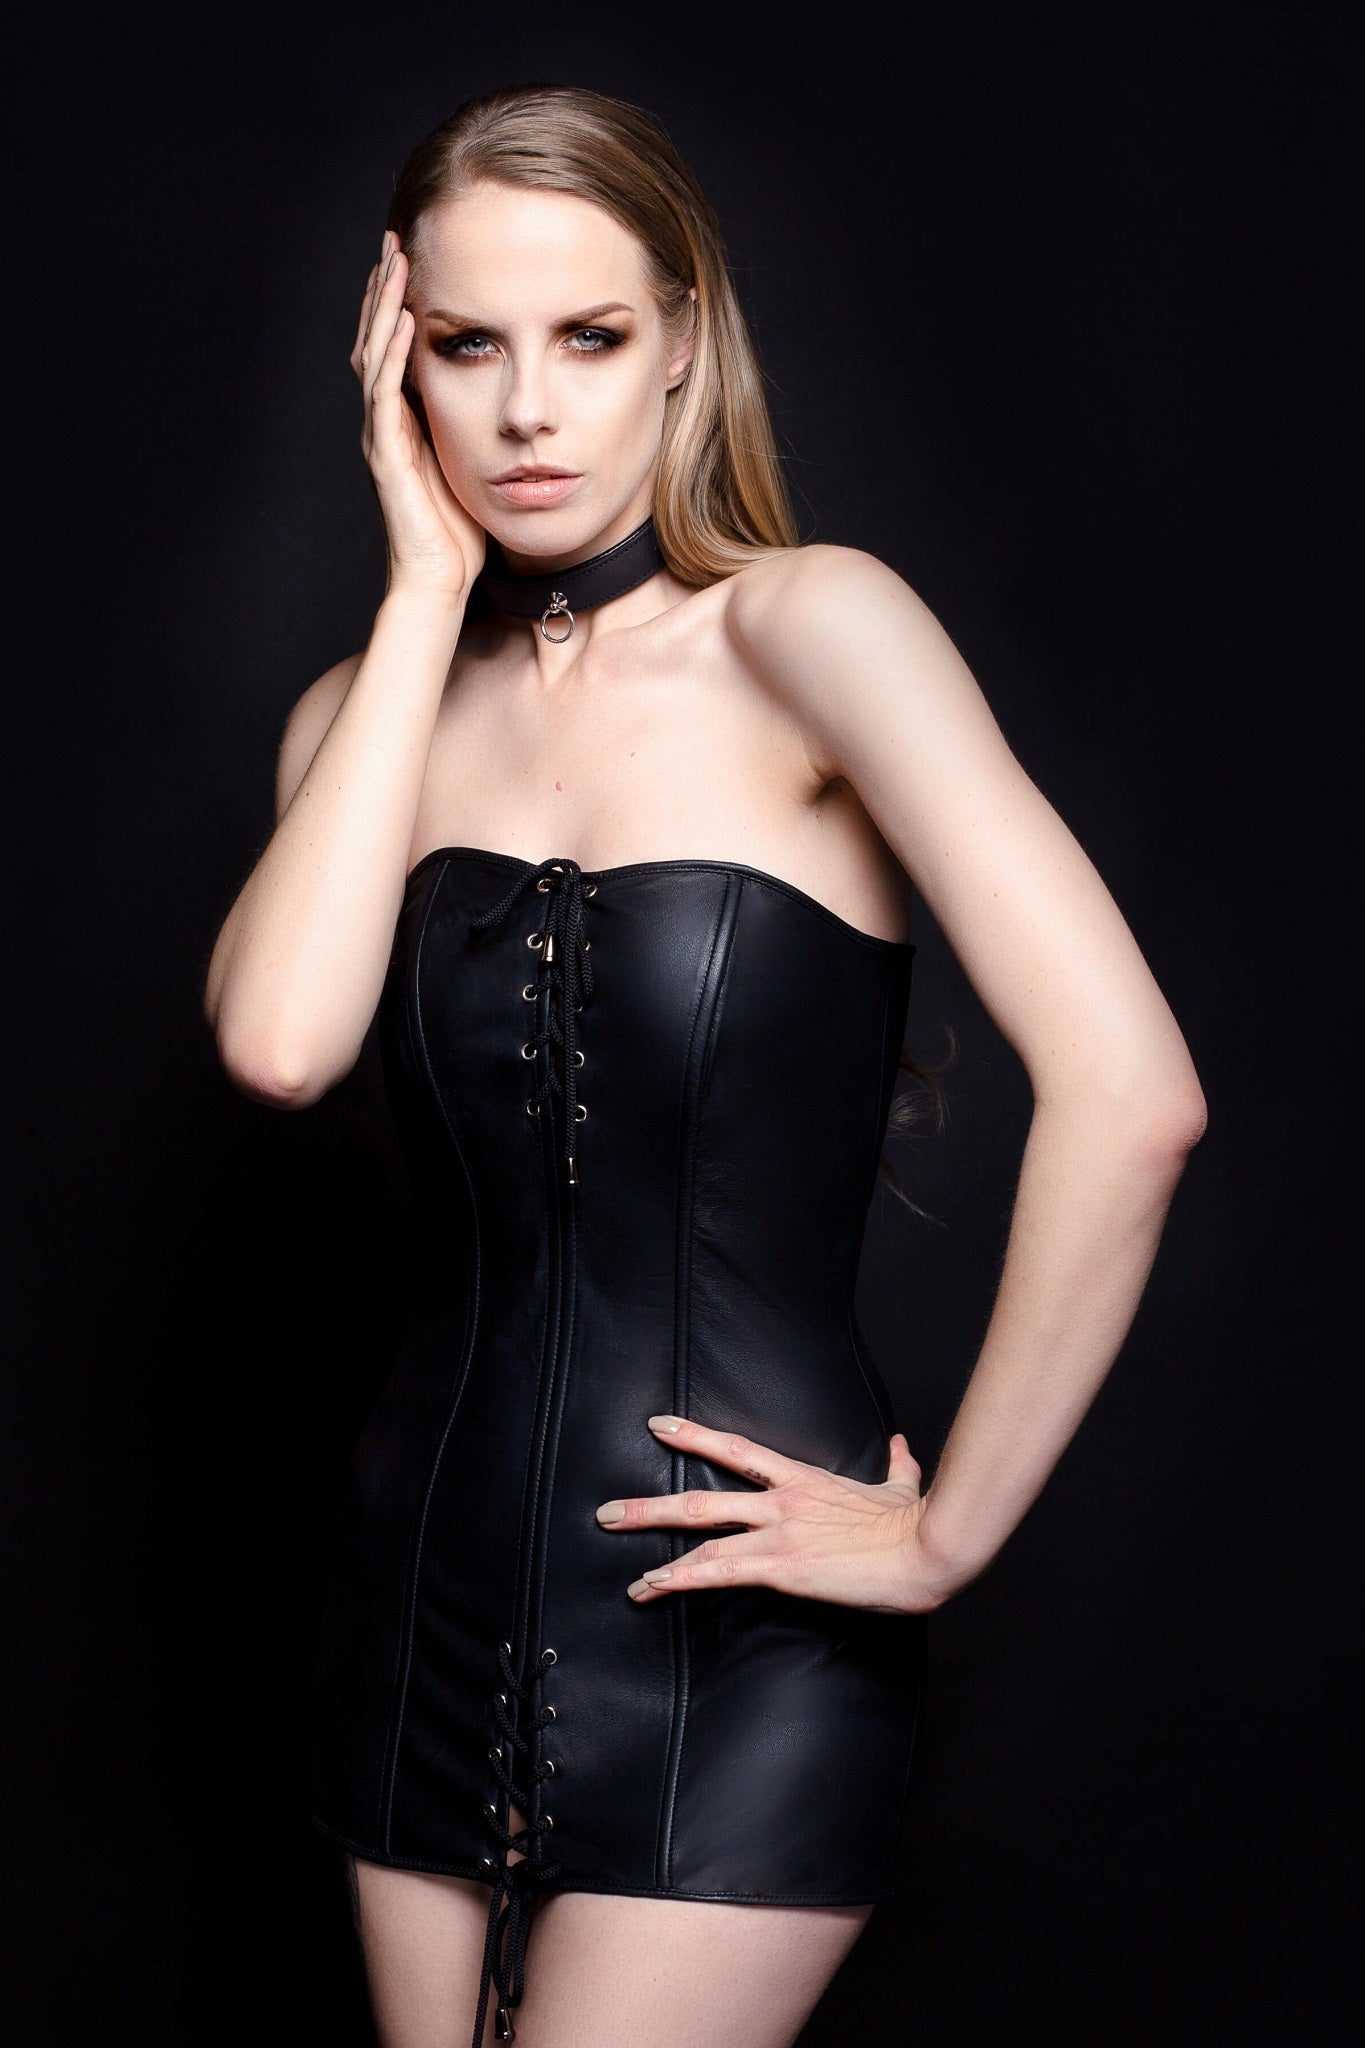 Ultra Black Leather Dress - House of SXN